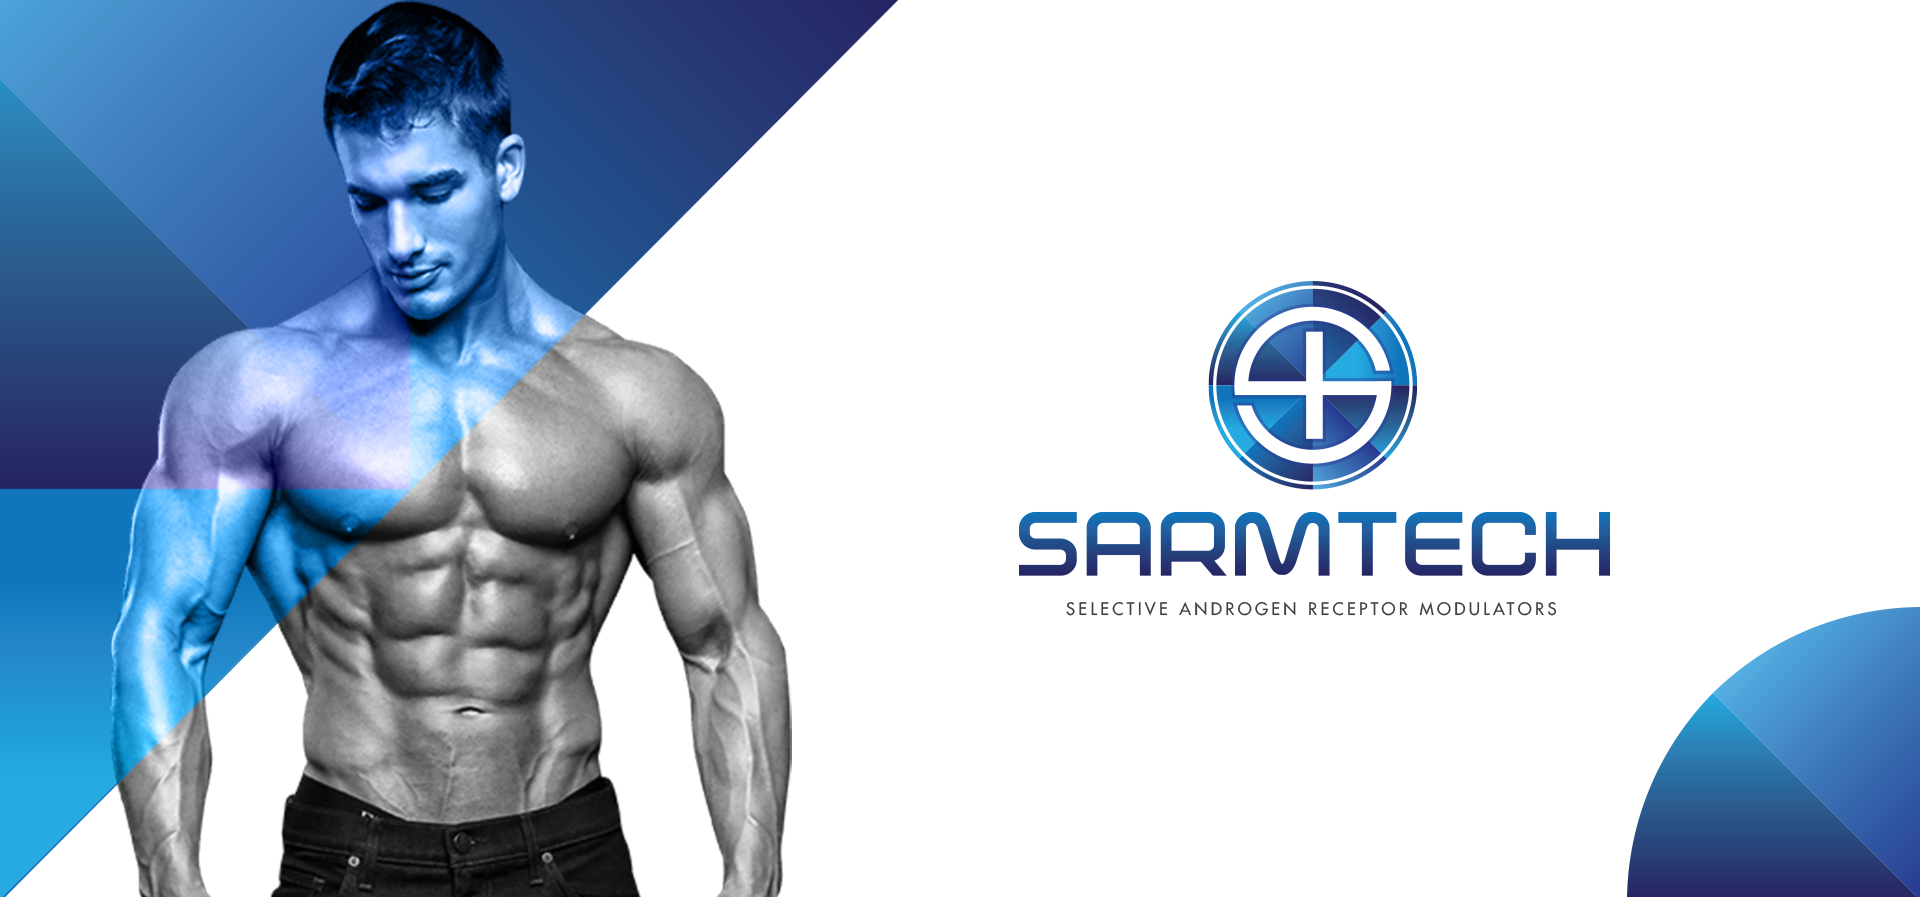 Australian SARMS Online Store | Buy High Quality SARMS in Australia